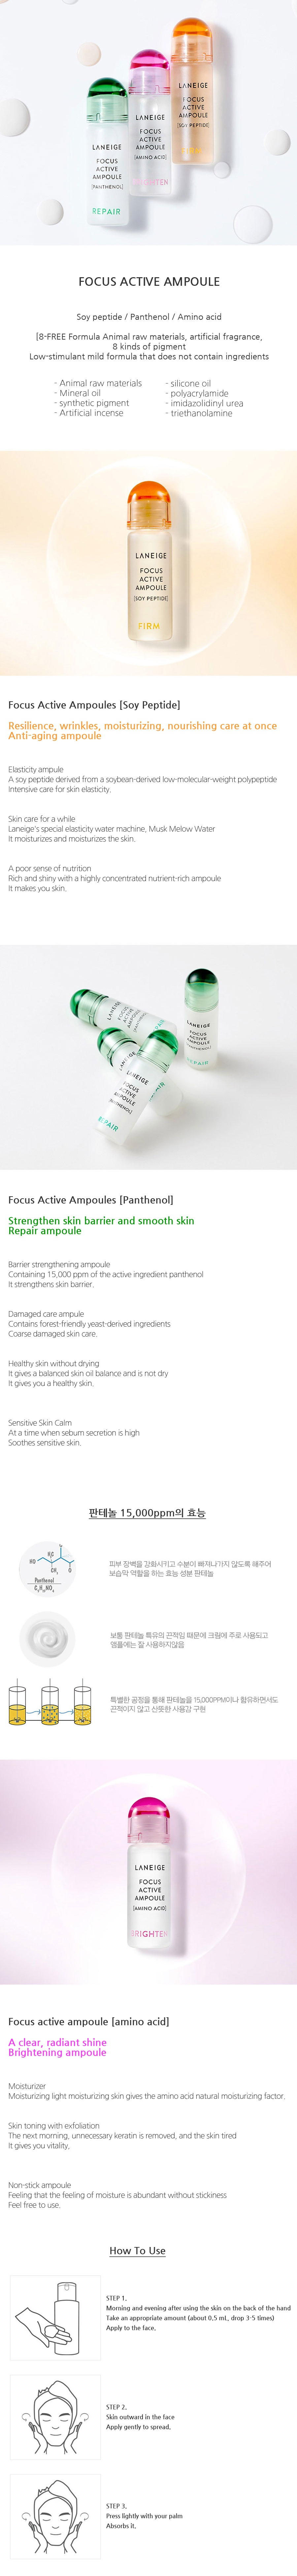 Laneige Focus Active Ampoule [Soy Peptide] korean cosmetic skincare product online shop malaysia china singapore1